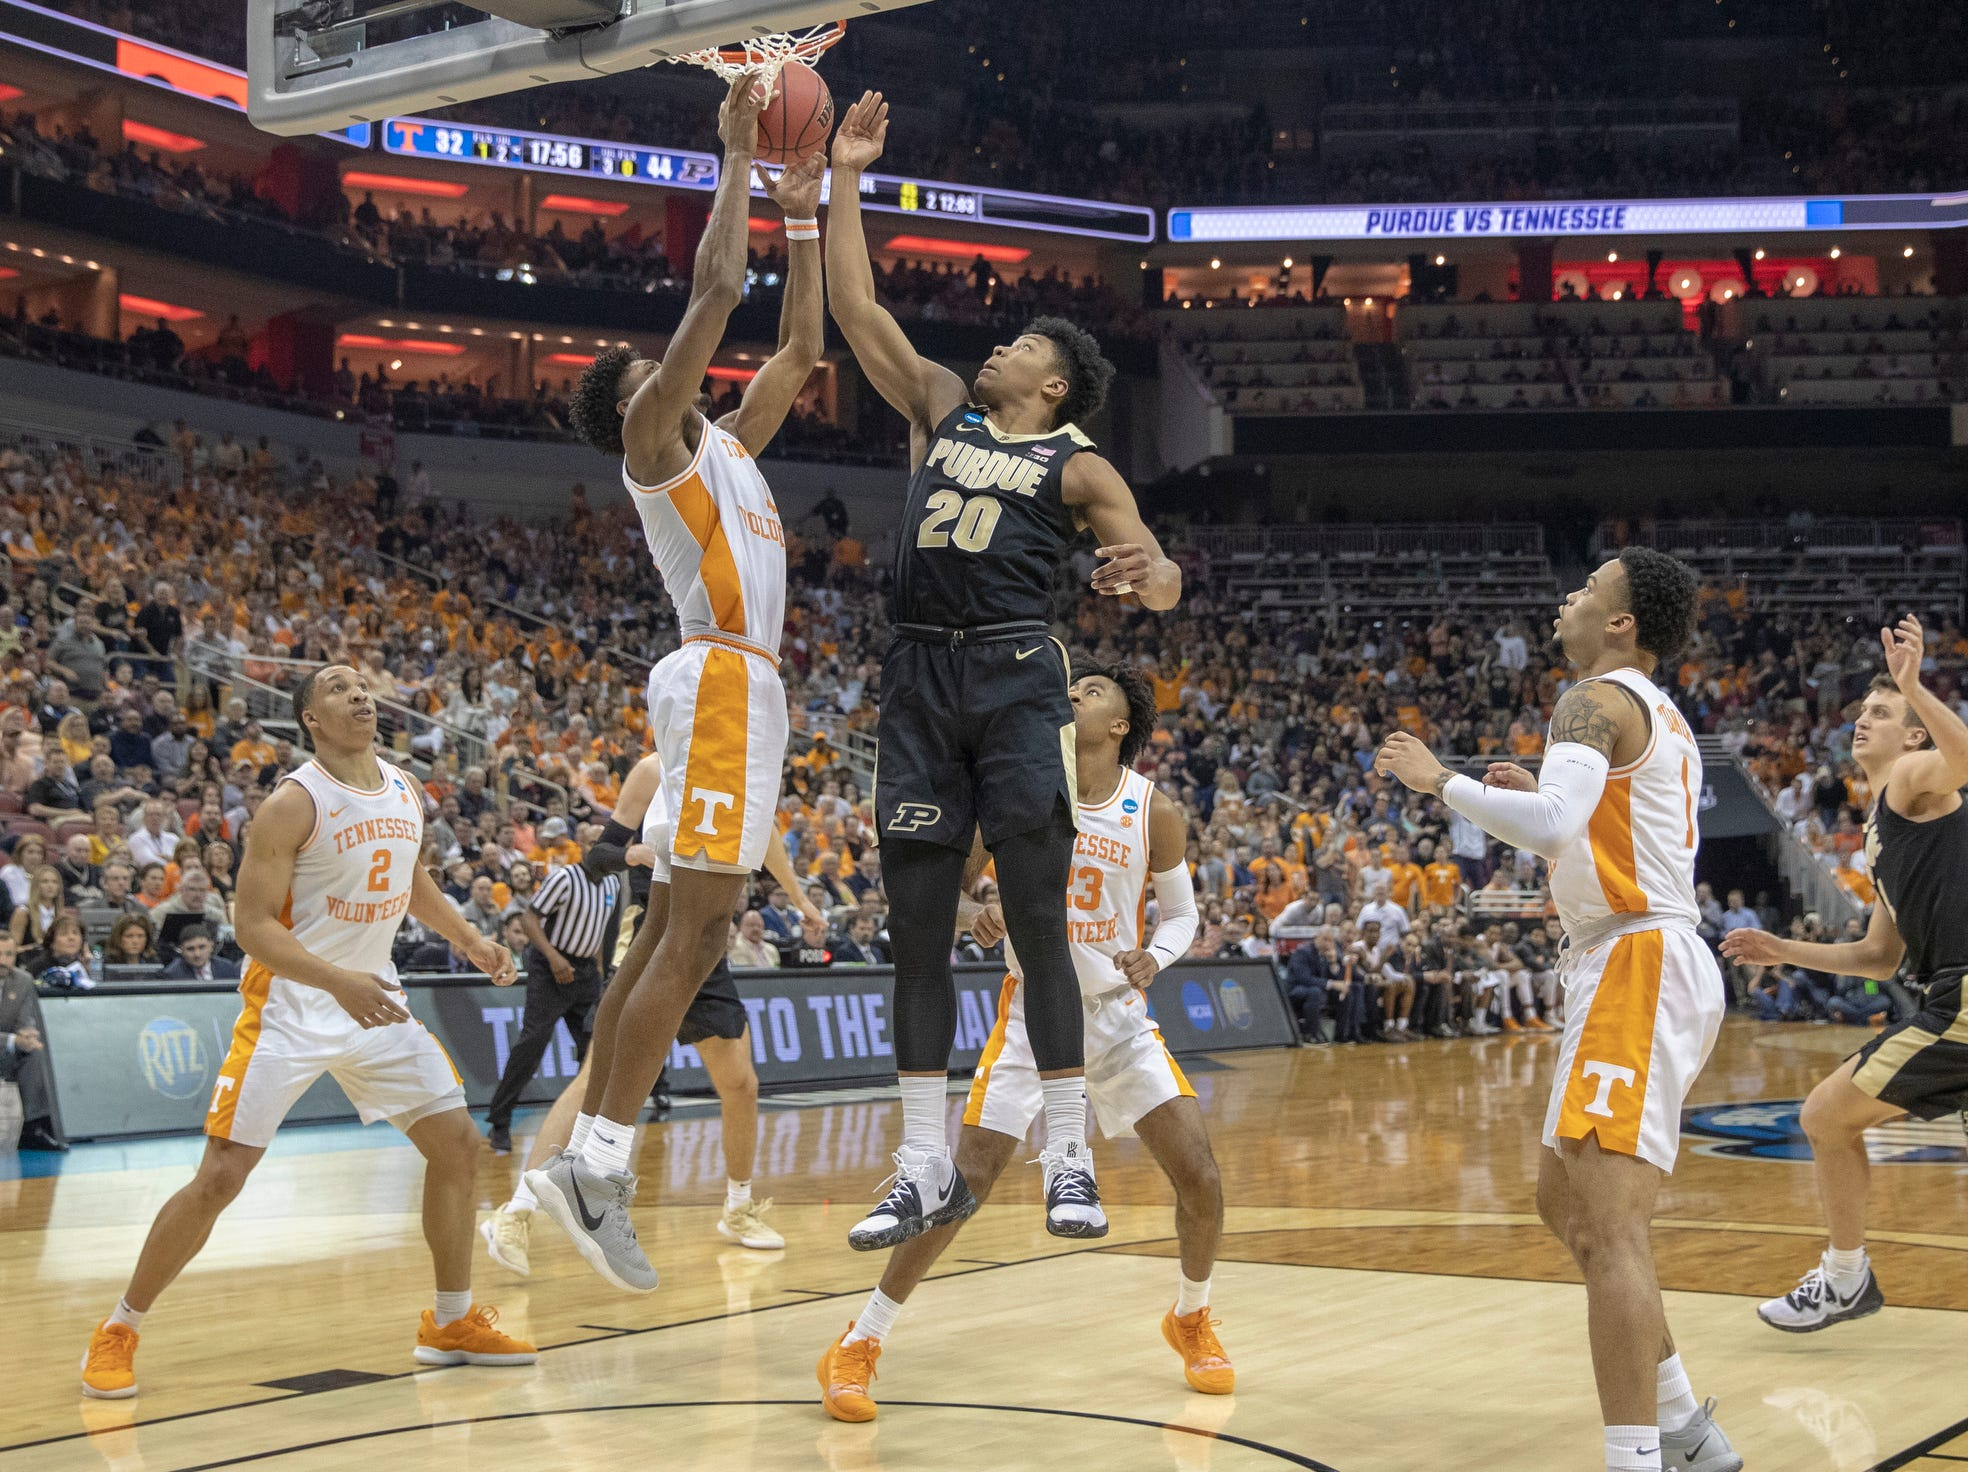 Purdue vs. Tennessee, NCAA Division 1 Men's Basketball 'Sweet Sixteen' game, KFC Yum Center, Louisville, Thursday, March 28, 2019. Purdue beat Tennessee 99-94.